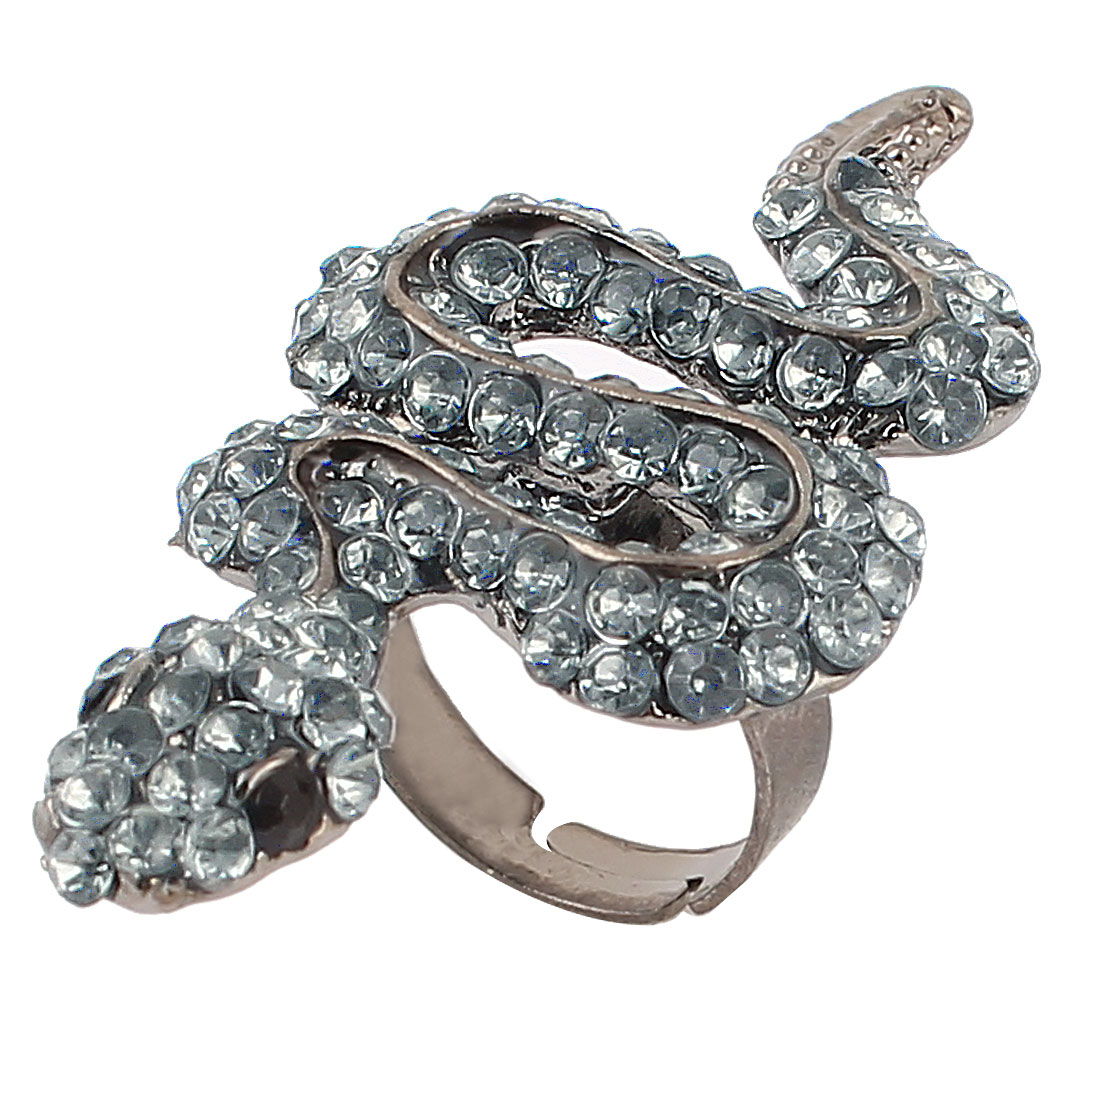 US 5 1/4 Gray Metal Snake Shape Faced Rhinestone Detailing Finger Ring for Lady